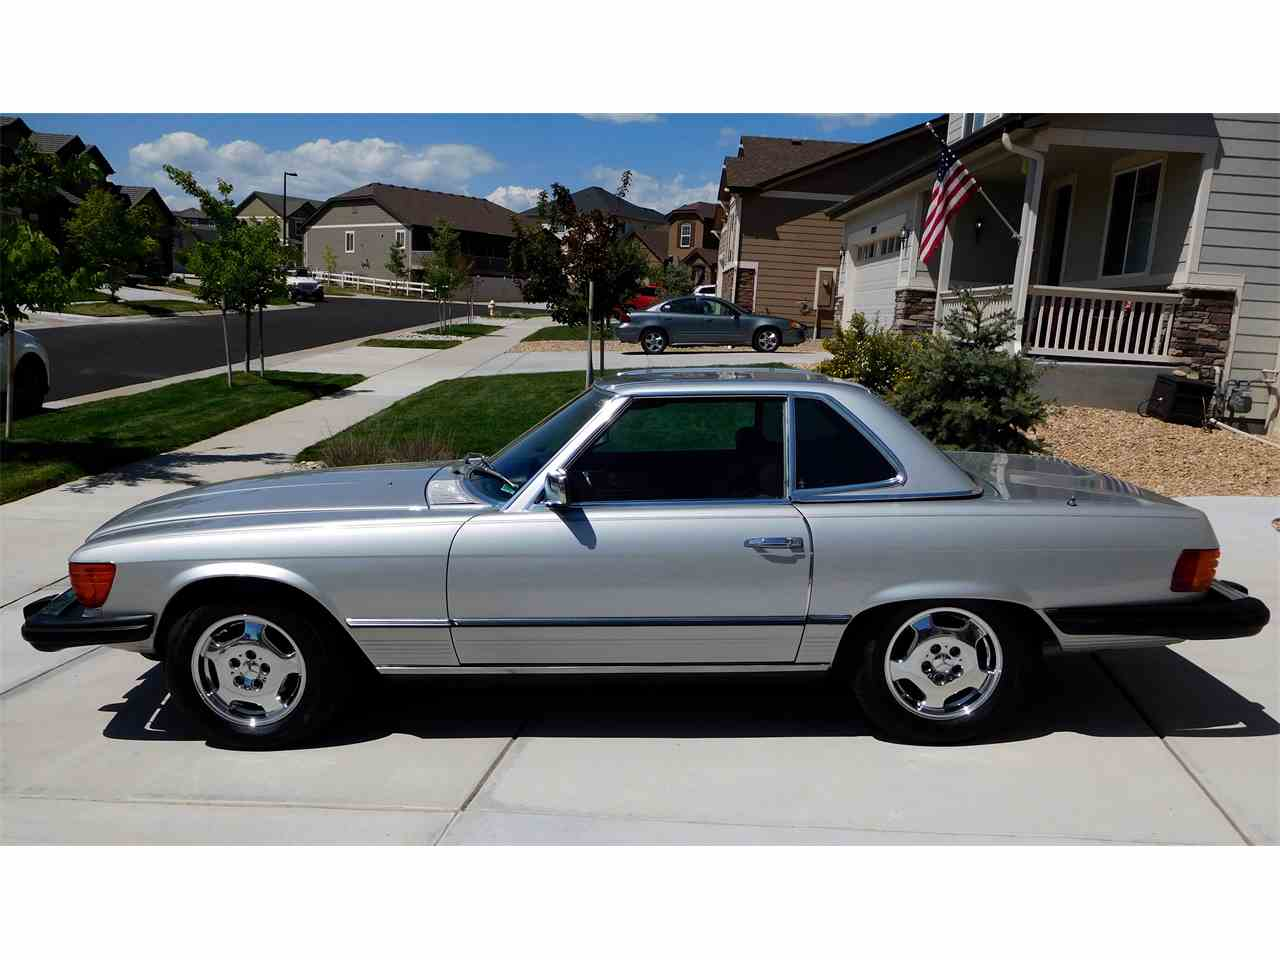 Large Picture of 1979 Mercedes-Benz 450SL located in Colorado - $13,999.00 Offered by a Private Seller - LUVZ